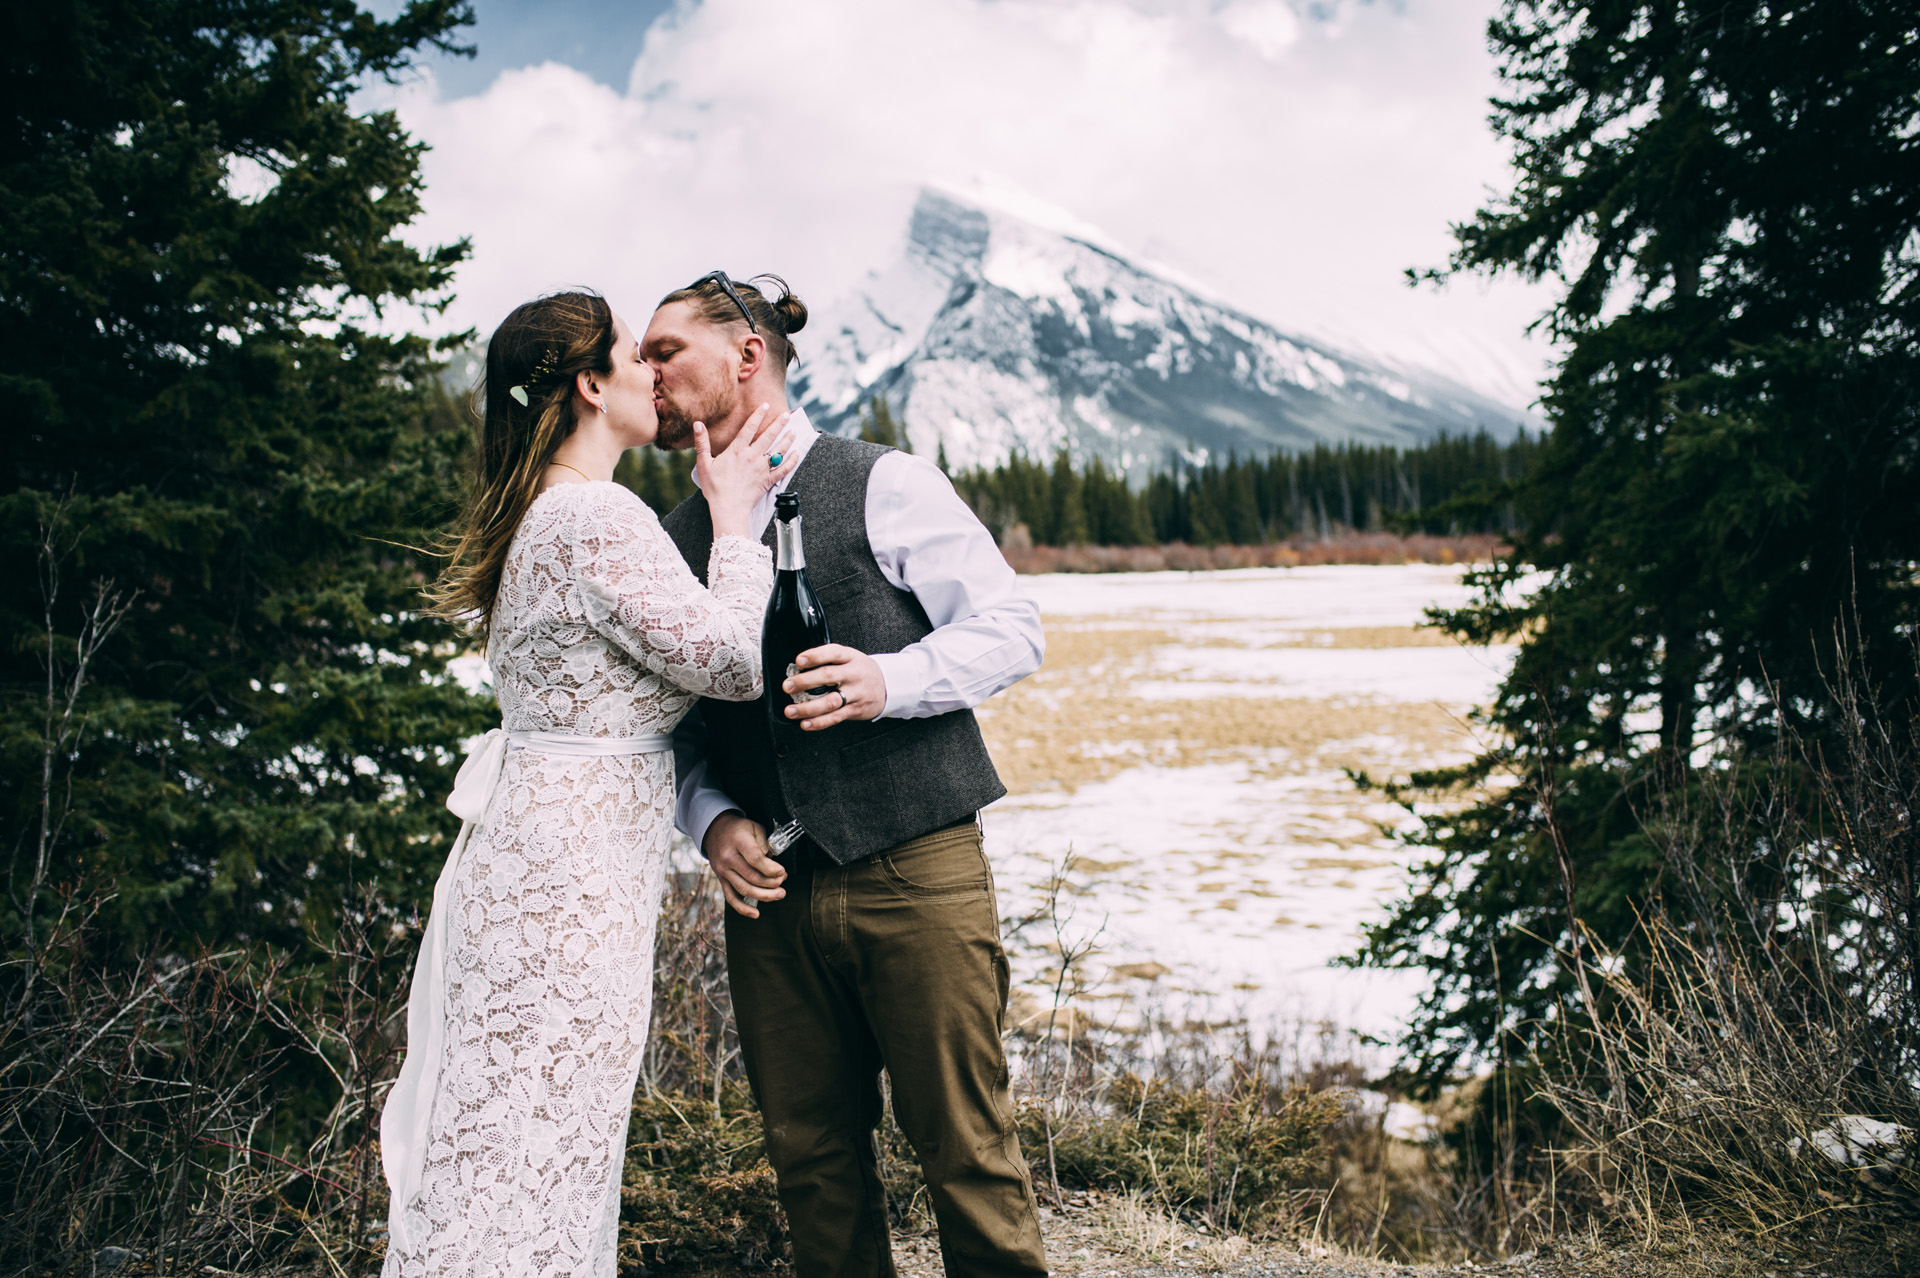 banff-wedding-photographer-59